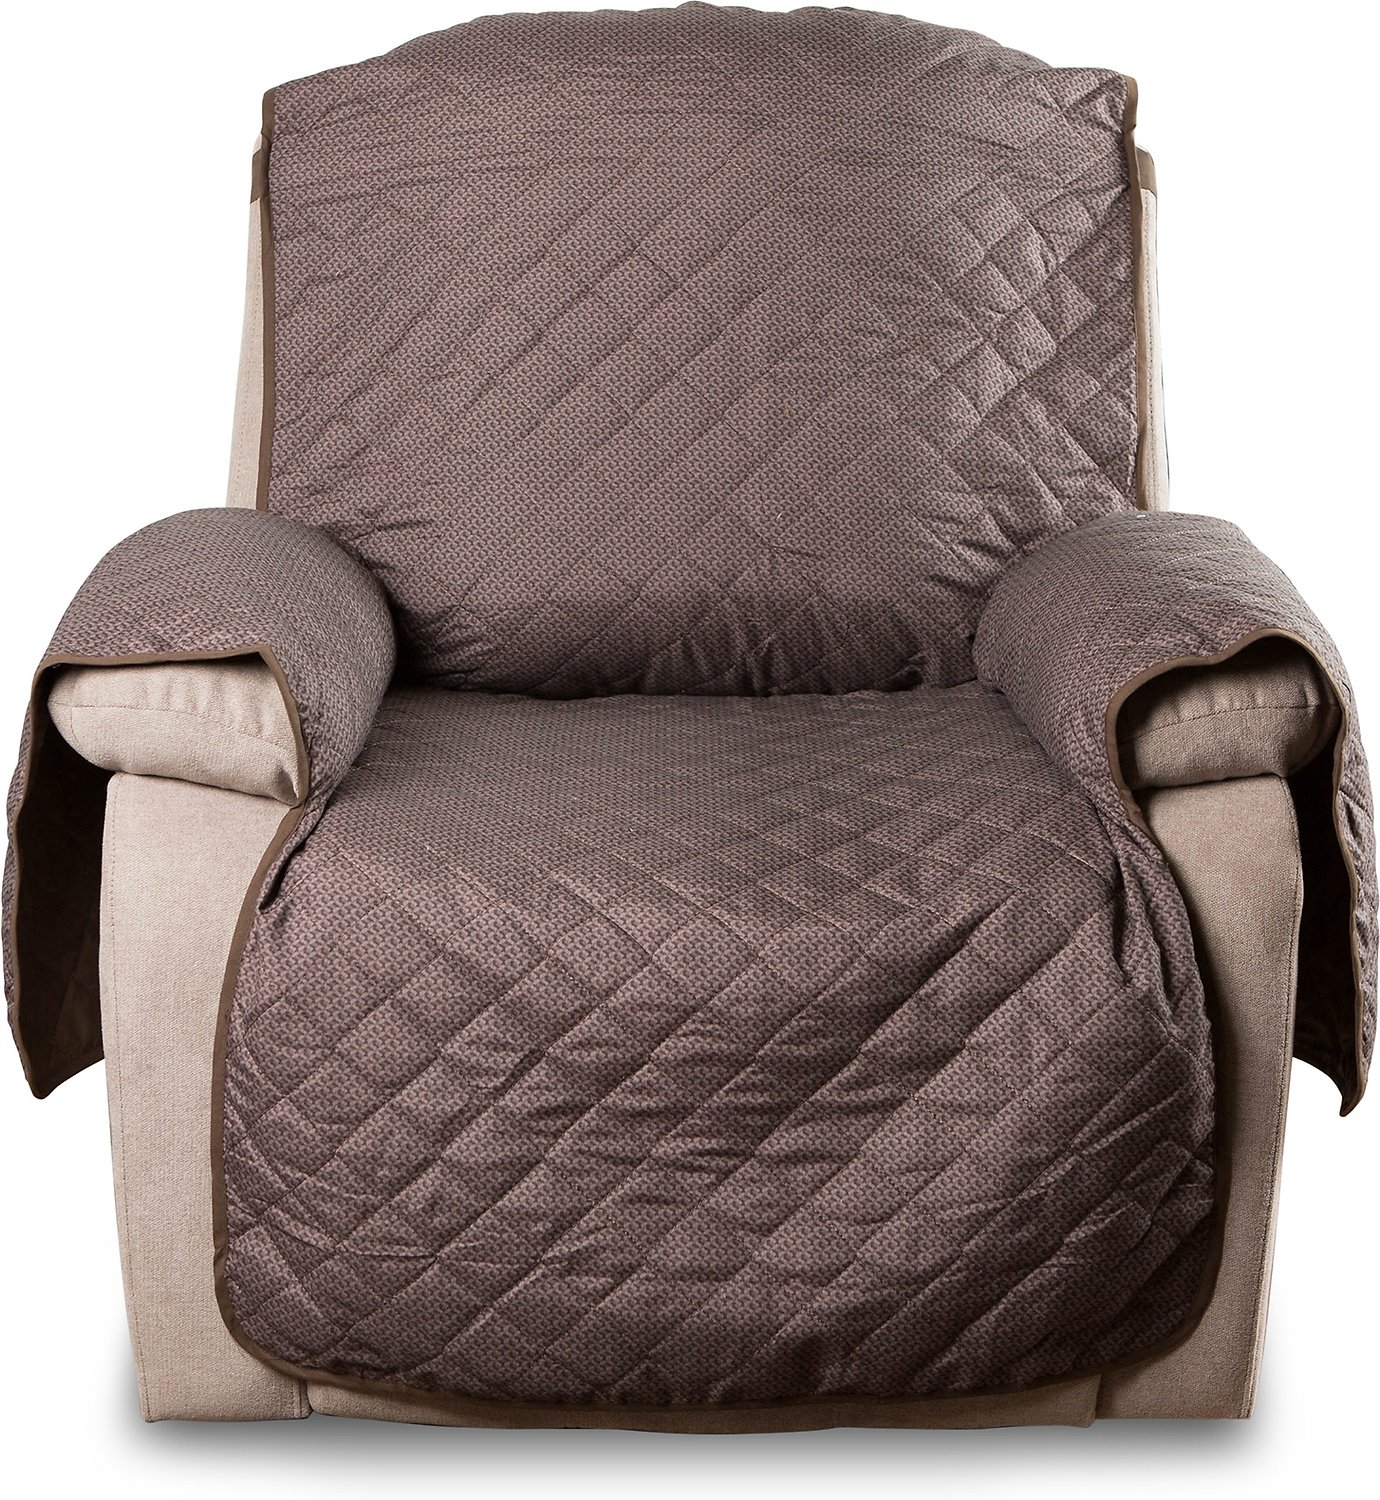 Incredible Bone Dry Reversible Recliner Cover Chocolate Print Pabps2019 Chair Design Images Pabps2019Com